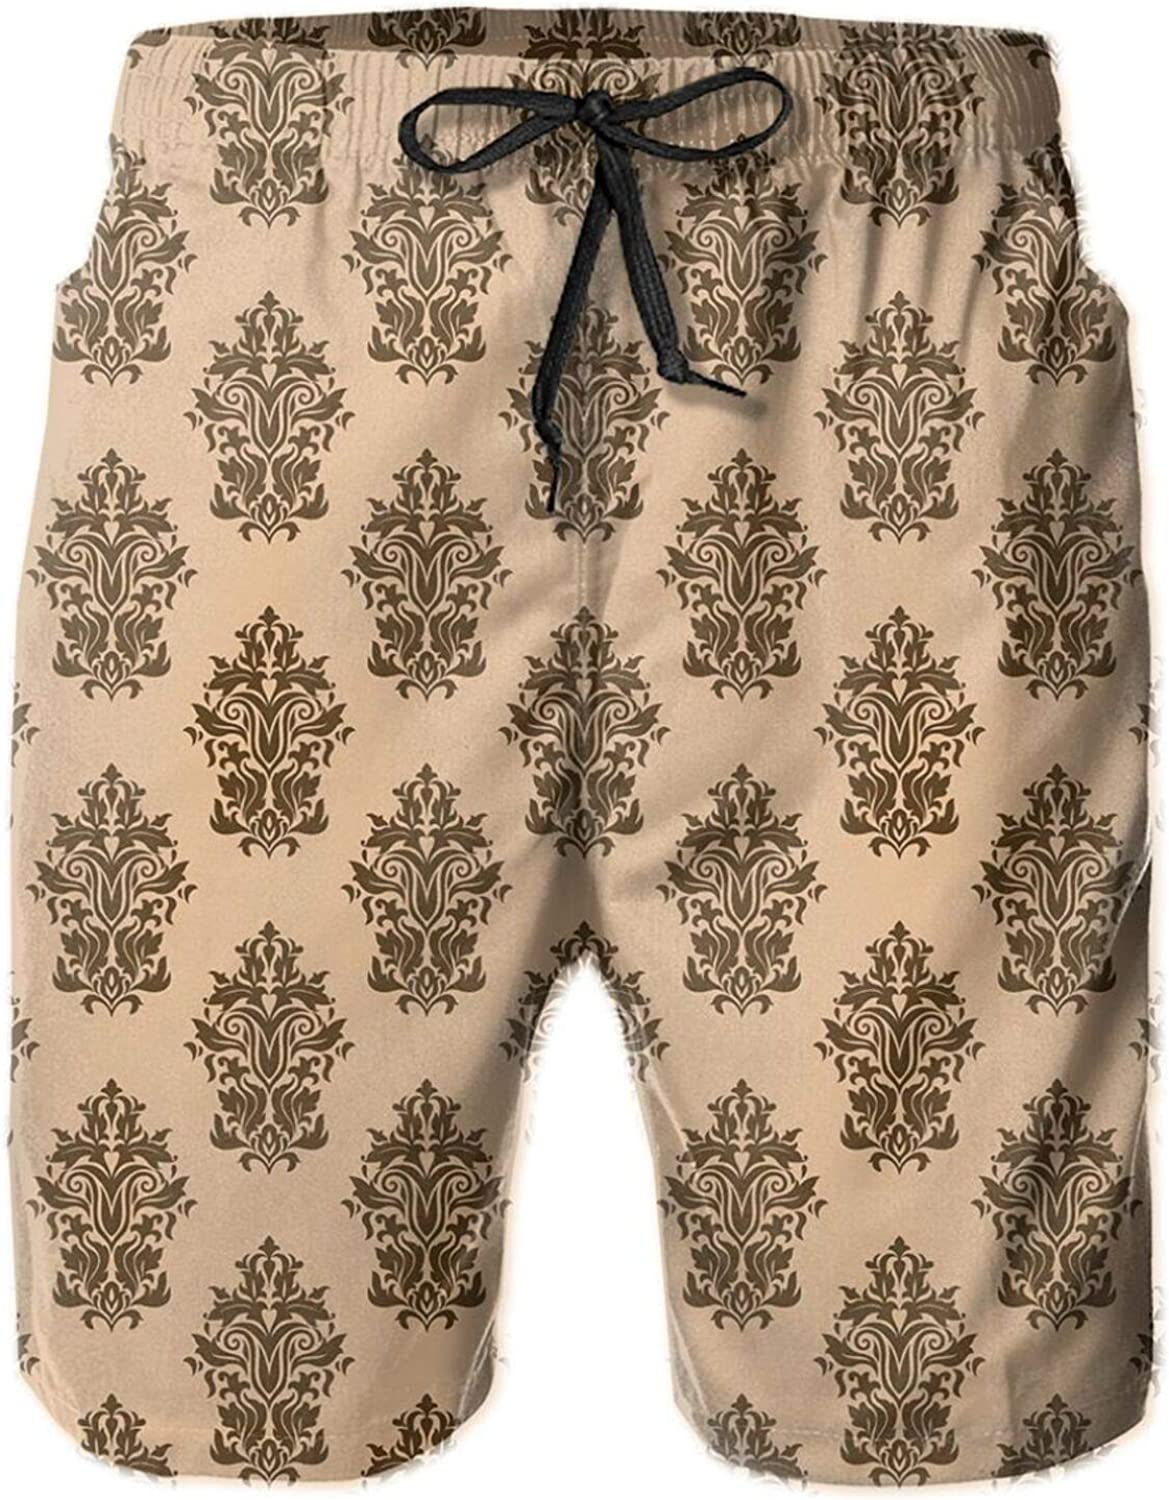 Floral Ancient Motifs with Classical Design Victorian Garden Themed Foliage Mens Swim Trucks Shorts with Mesh Lining,XXL